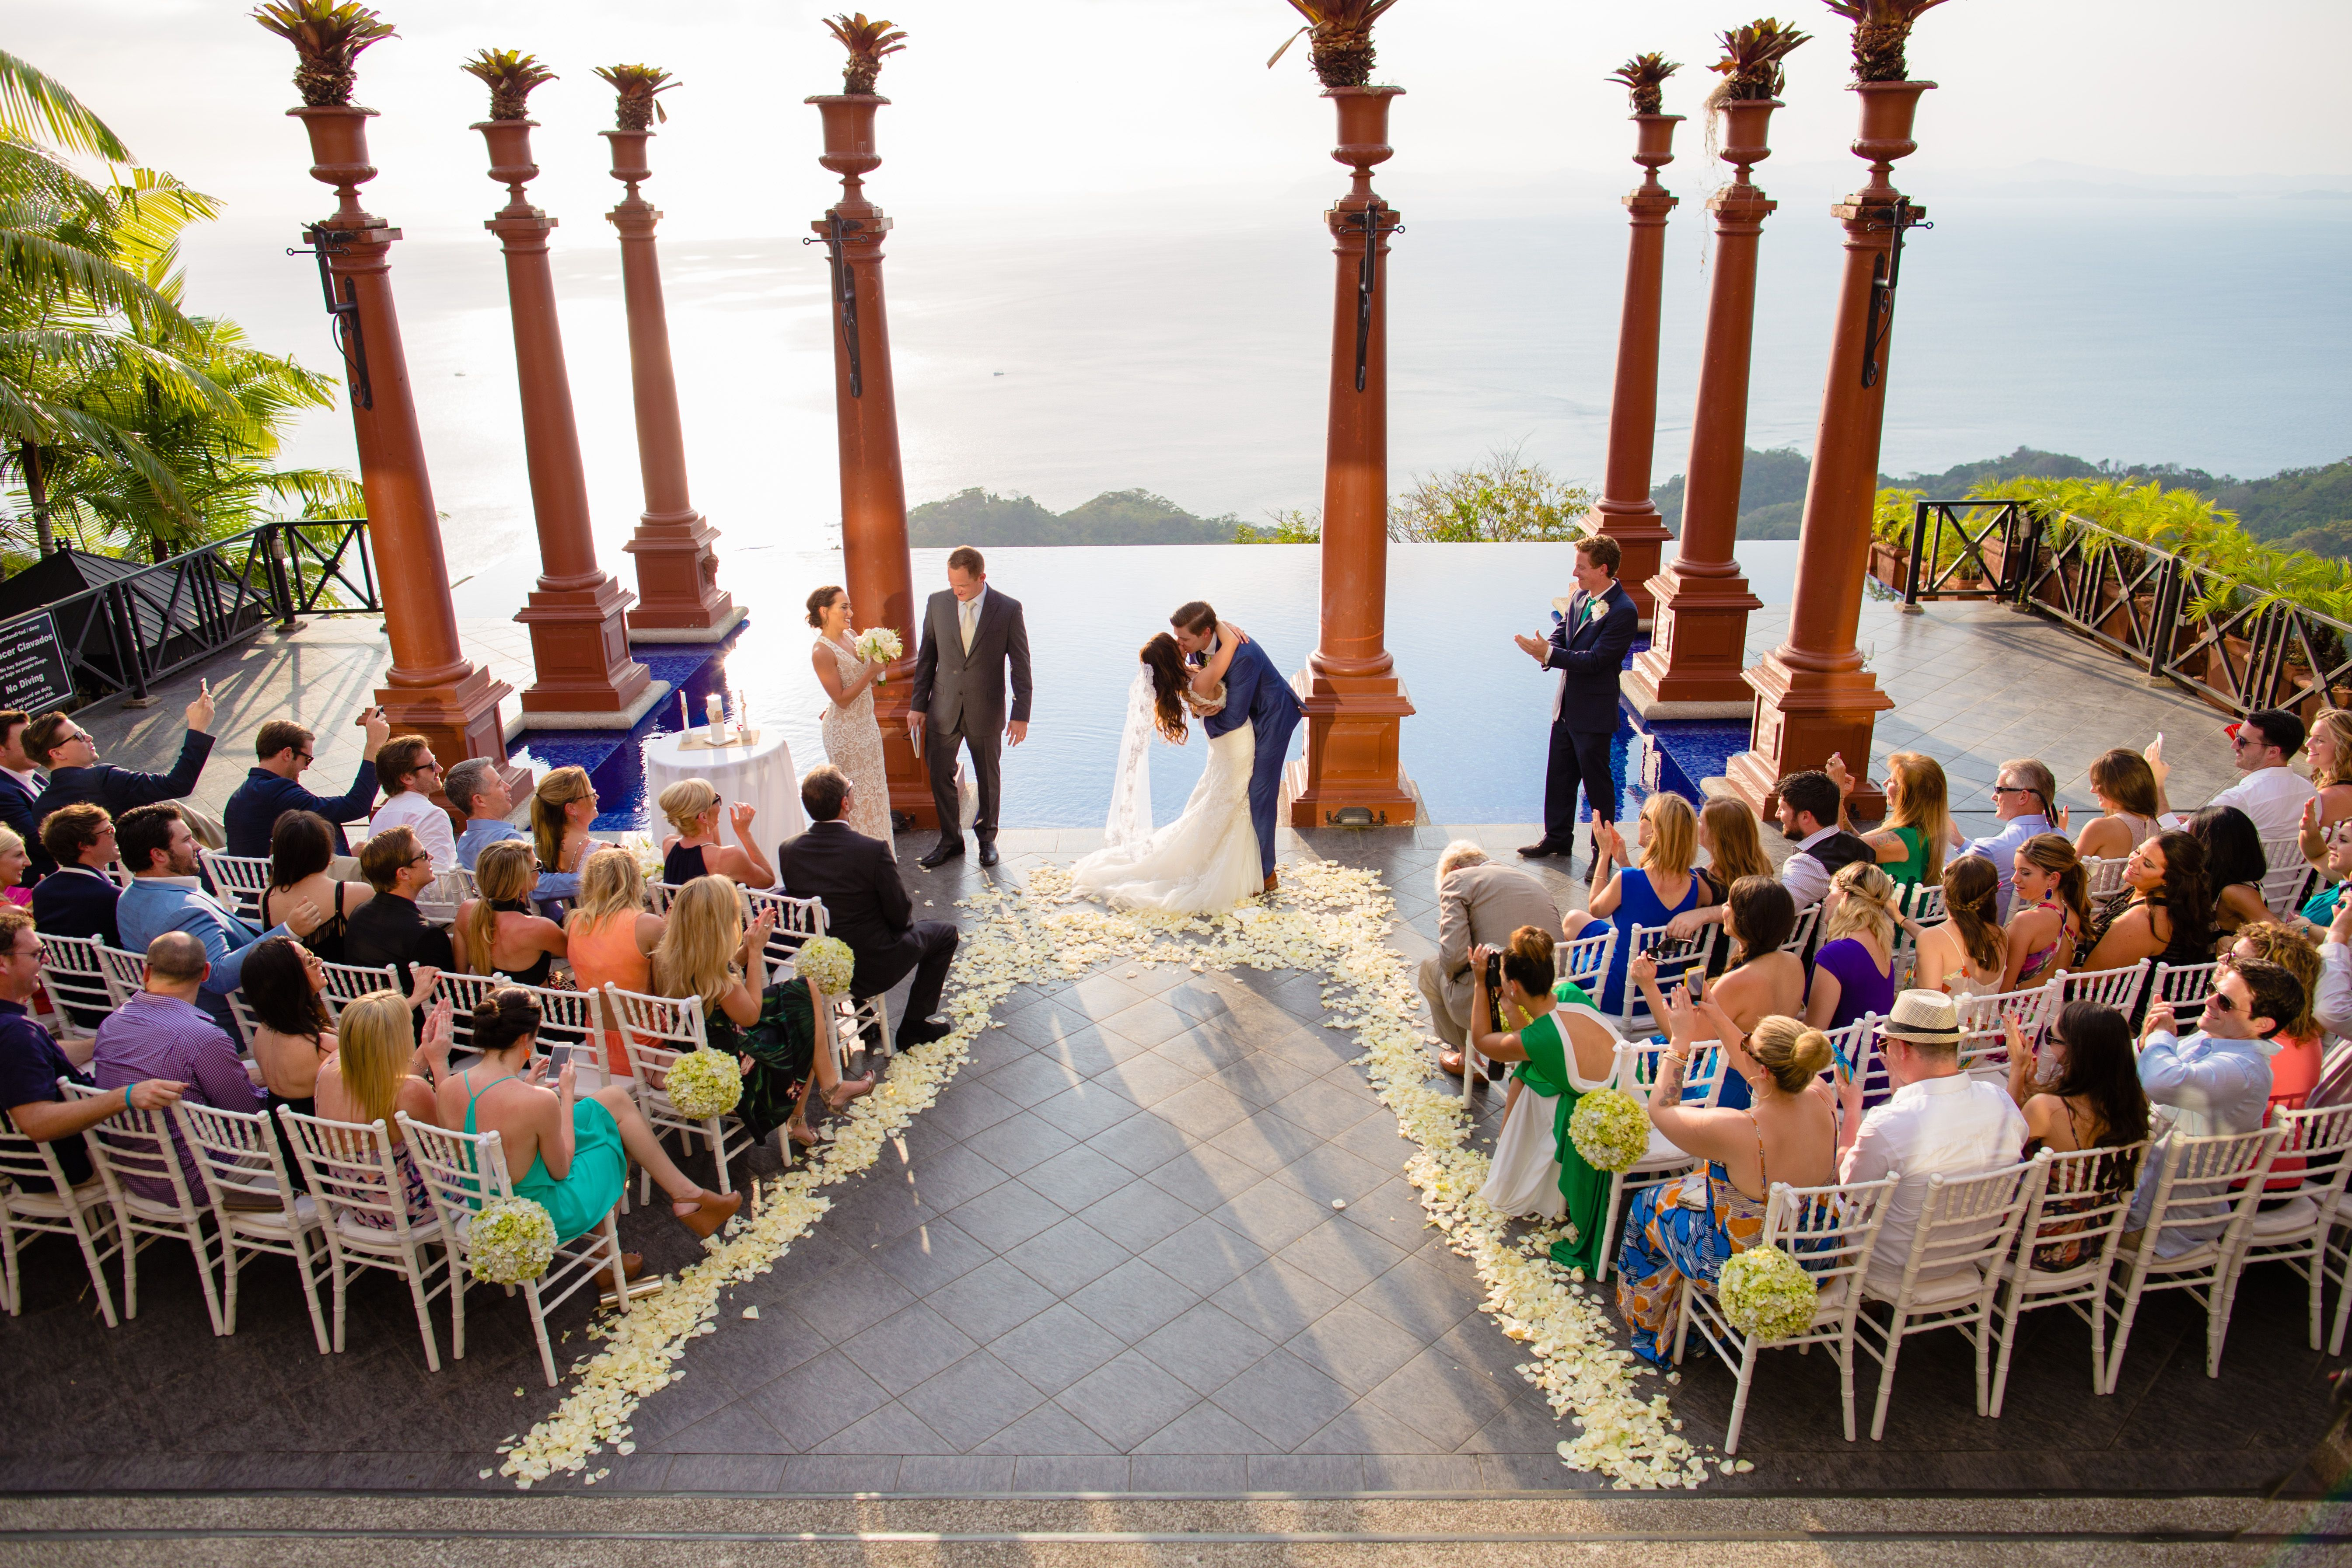 Wedding Couple Carried On Chairs During Dancing The Horah Reception Took Place At Zephyr Palace In Costa Rica